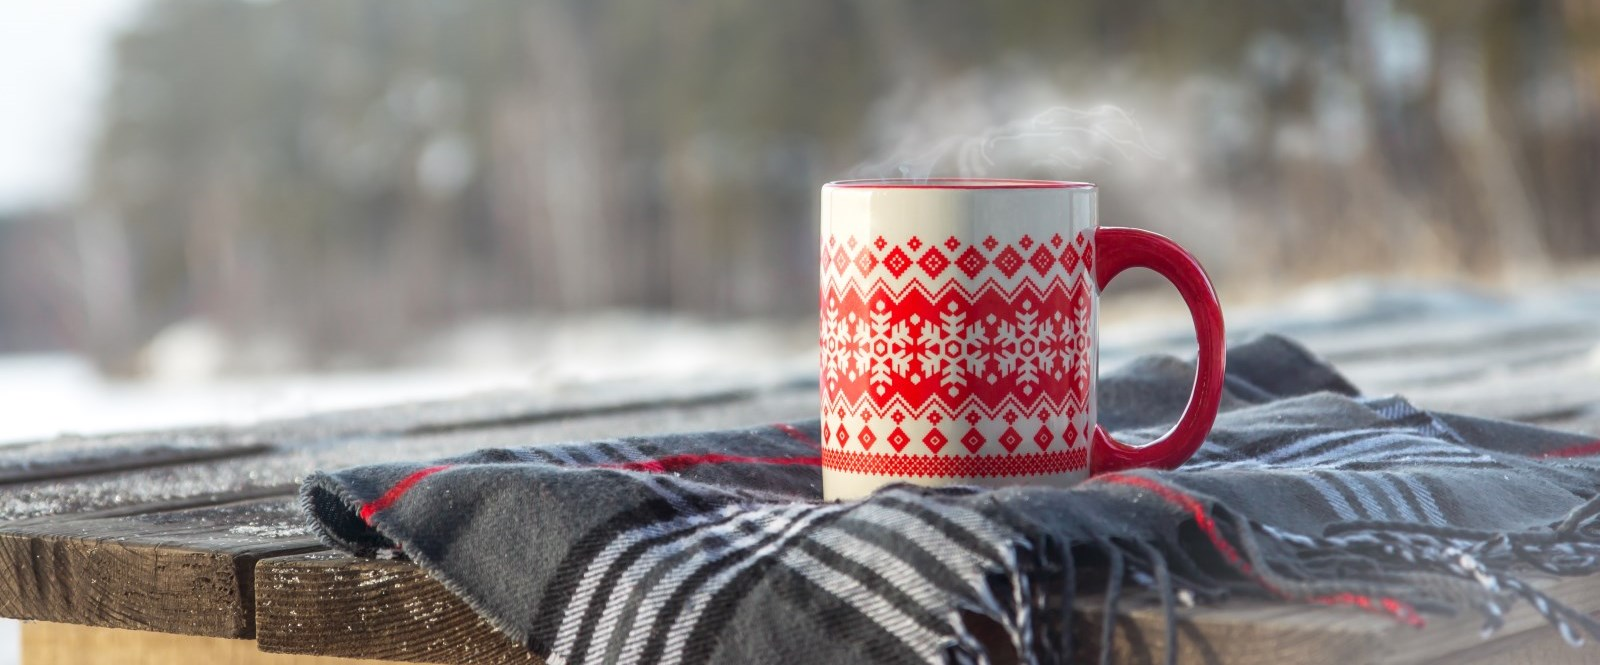 hot mug on plaid scarf overlooking conservation